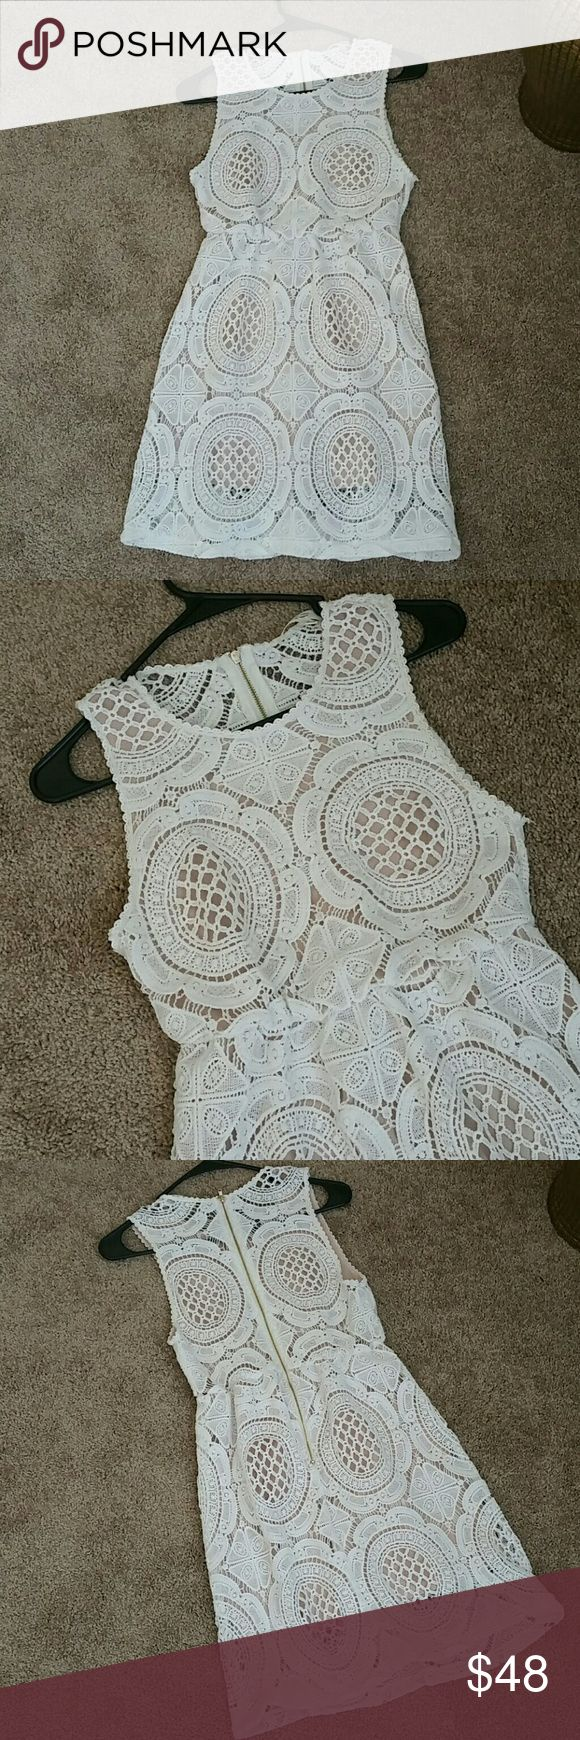 """Cream Embroidered Dress Fully lined cream lace dress 👌👗  A true must have gorgeous little dress, it can be easily a daily outfit with flip flops or a night out elegant dress if styled with some accessories and high heels.  Size is Small petite  Lenght 32"""" Bust 32"""" Dresses Mini"""